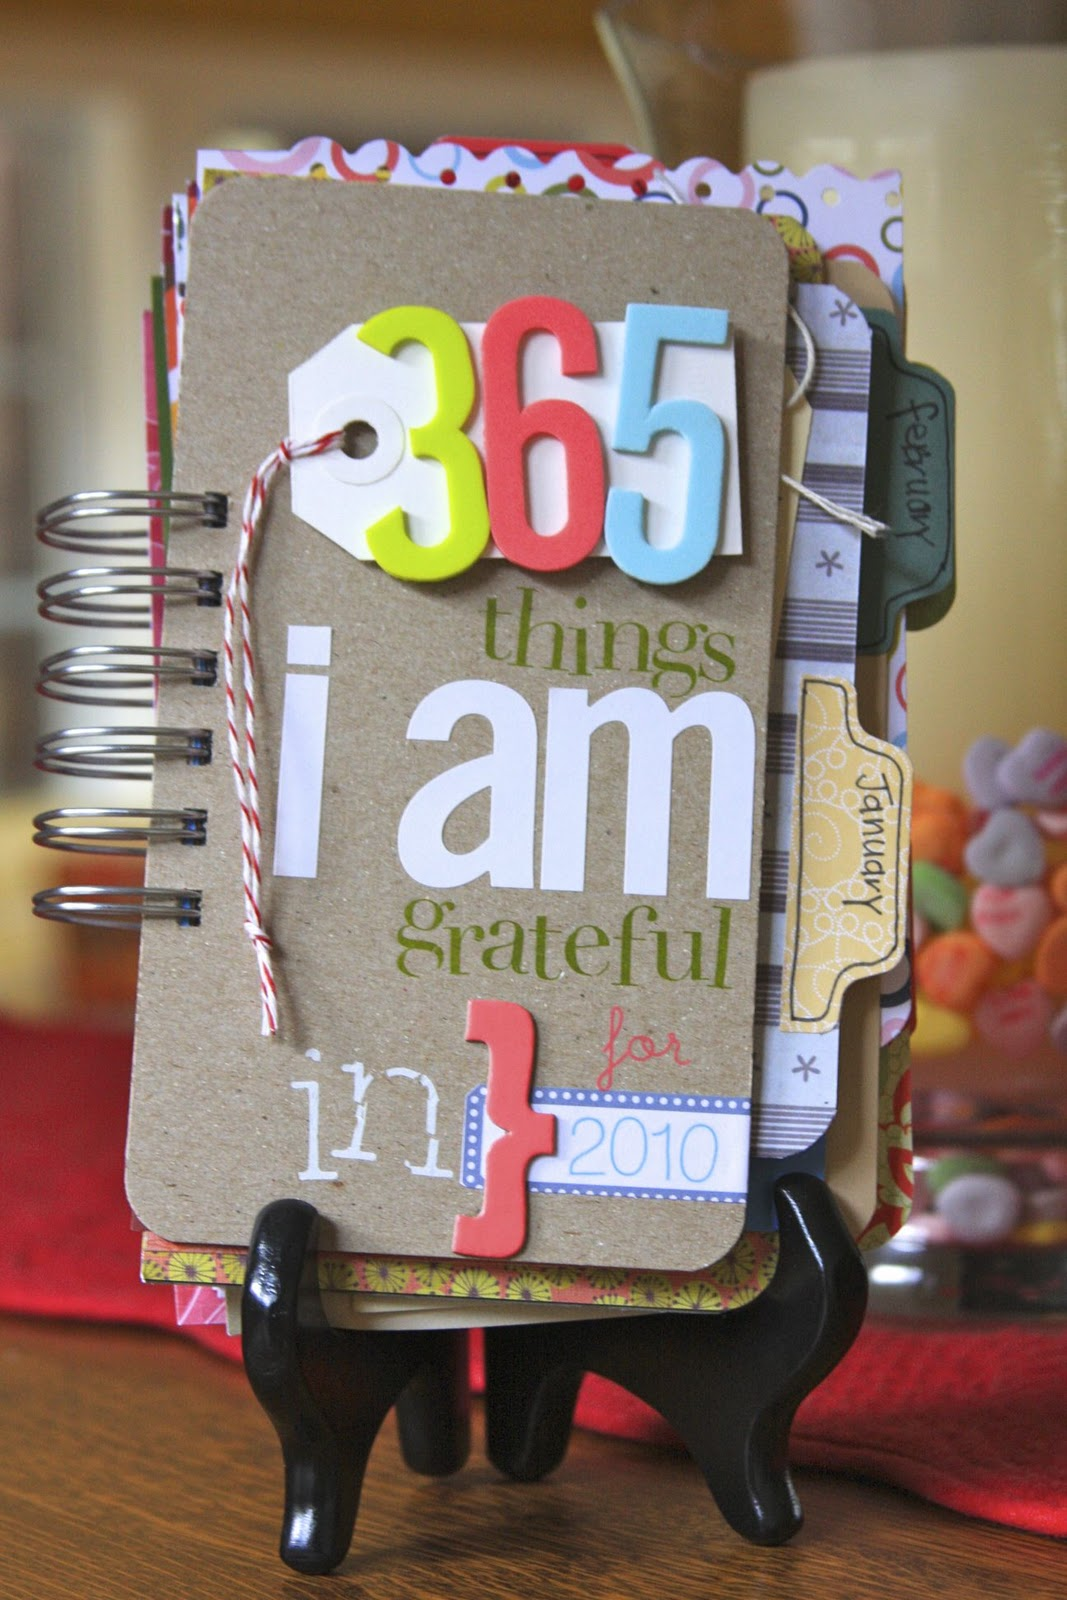 #gratitude journal #thankfulness #mindfulness #gratitude #grateful #Things I Am Grateful For #journal #notebook